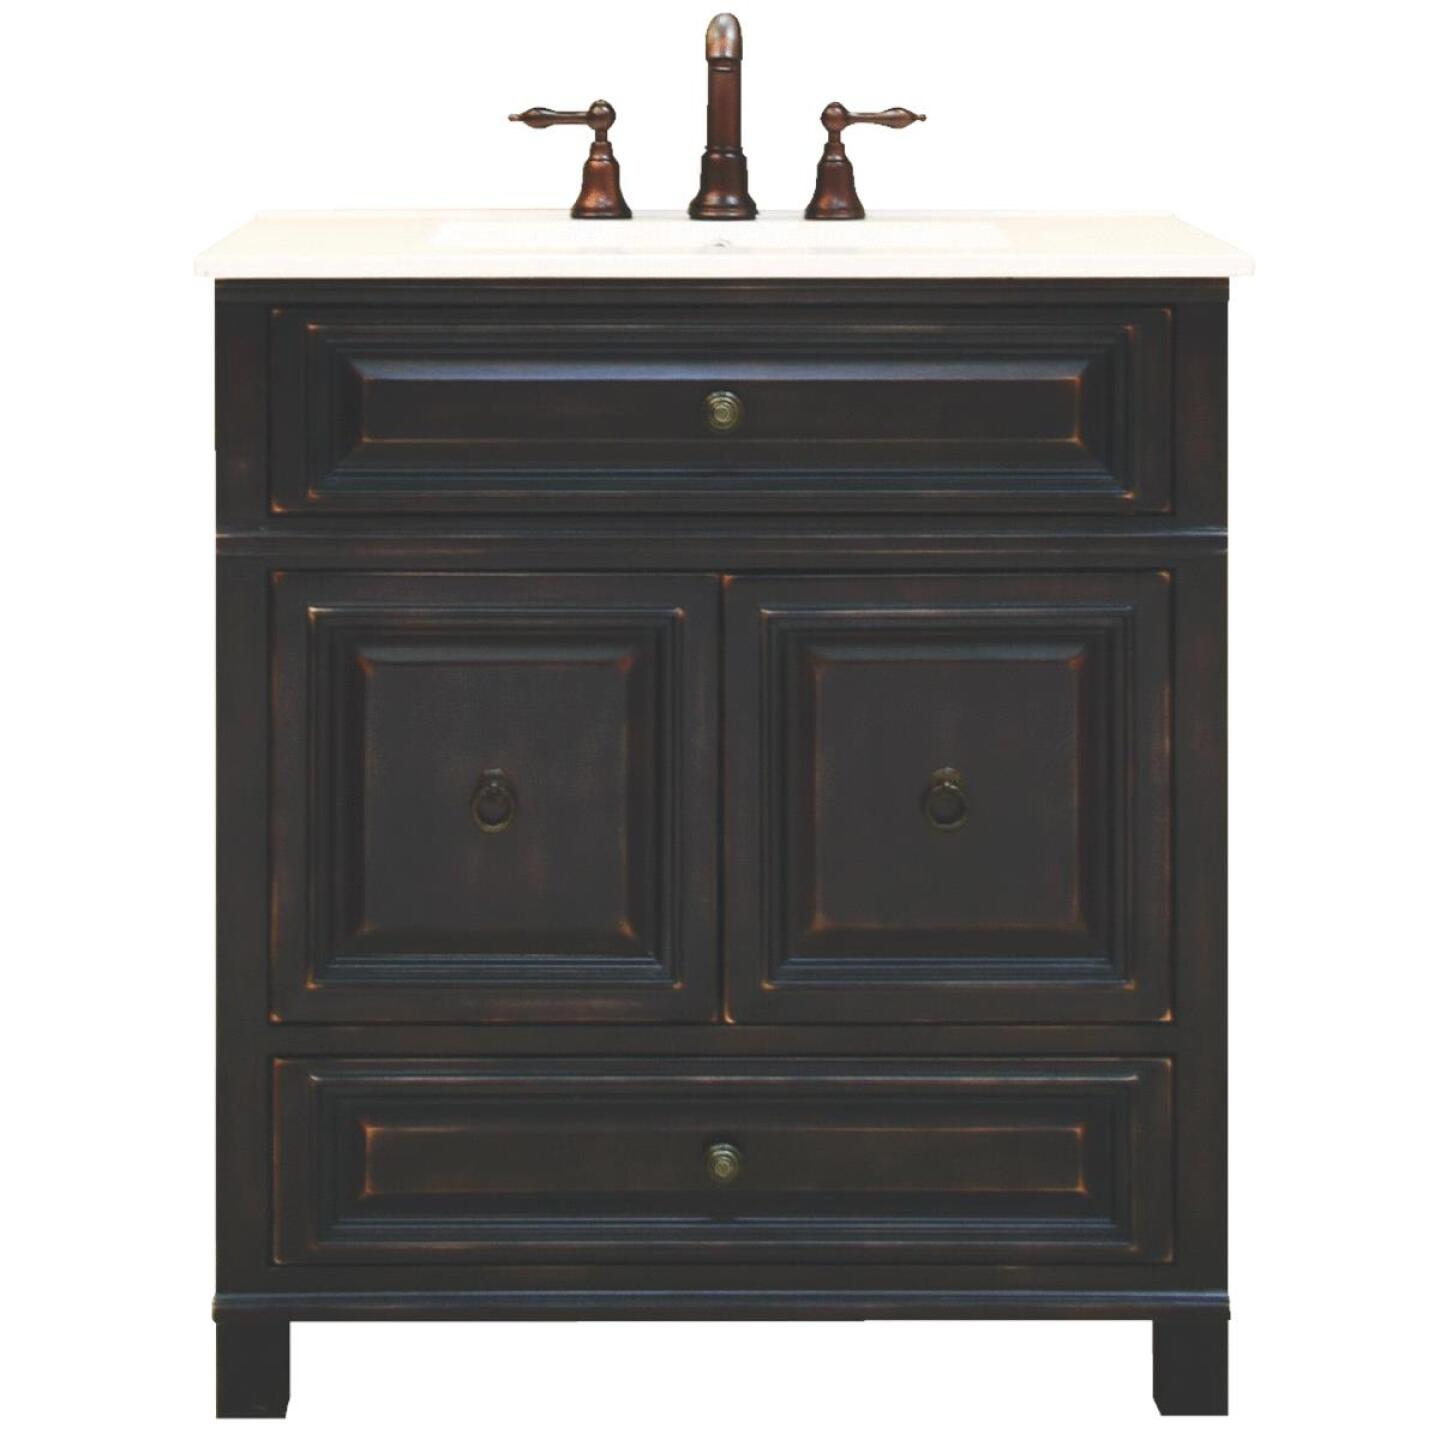 Sunny Wood Barton Hill Black Onyx 30 In. W x 34 In. H x 21 In. D Vanity Base, 2 Door/1 Drawer Image 238